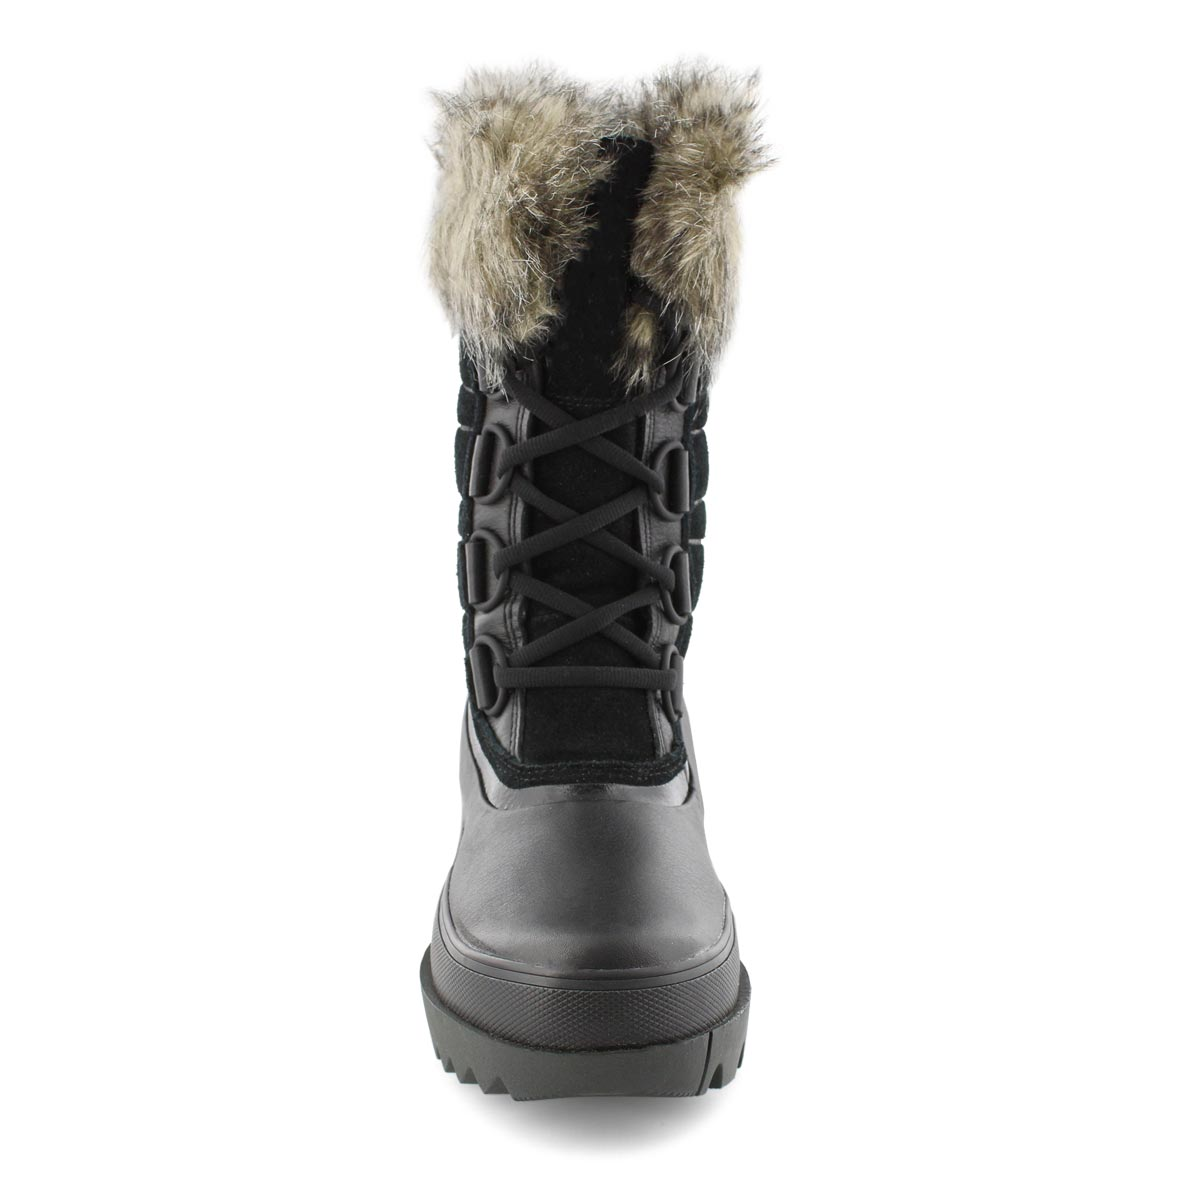 Lds Joan of Arctic Next blk winter boot